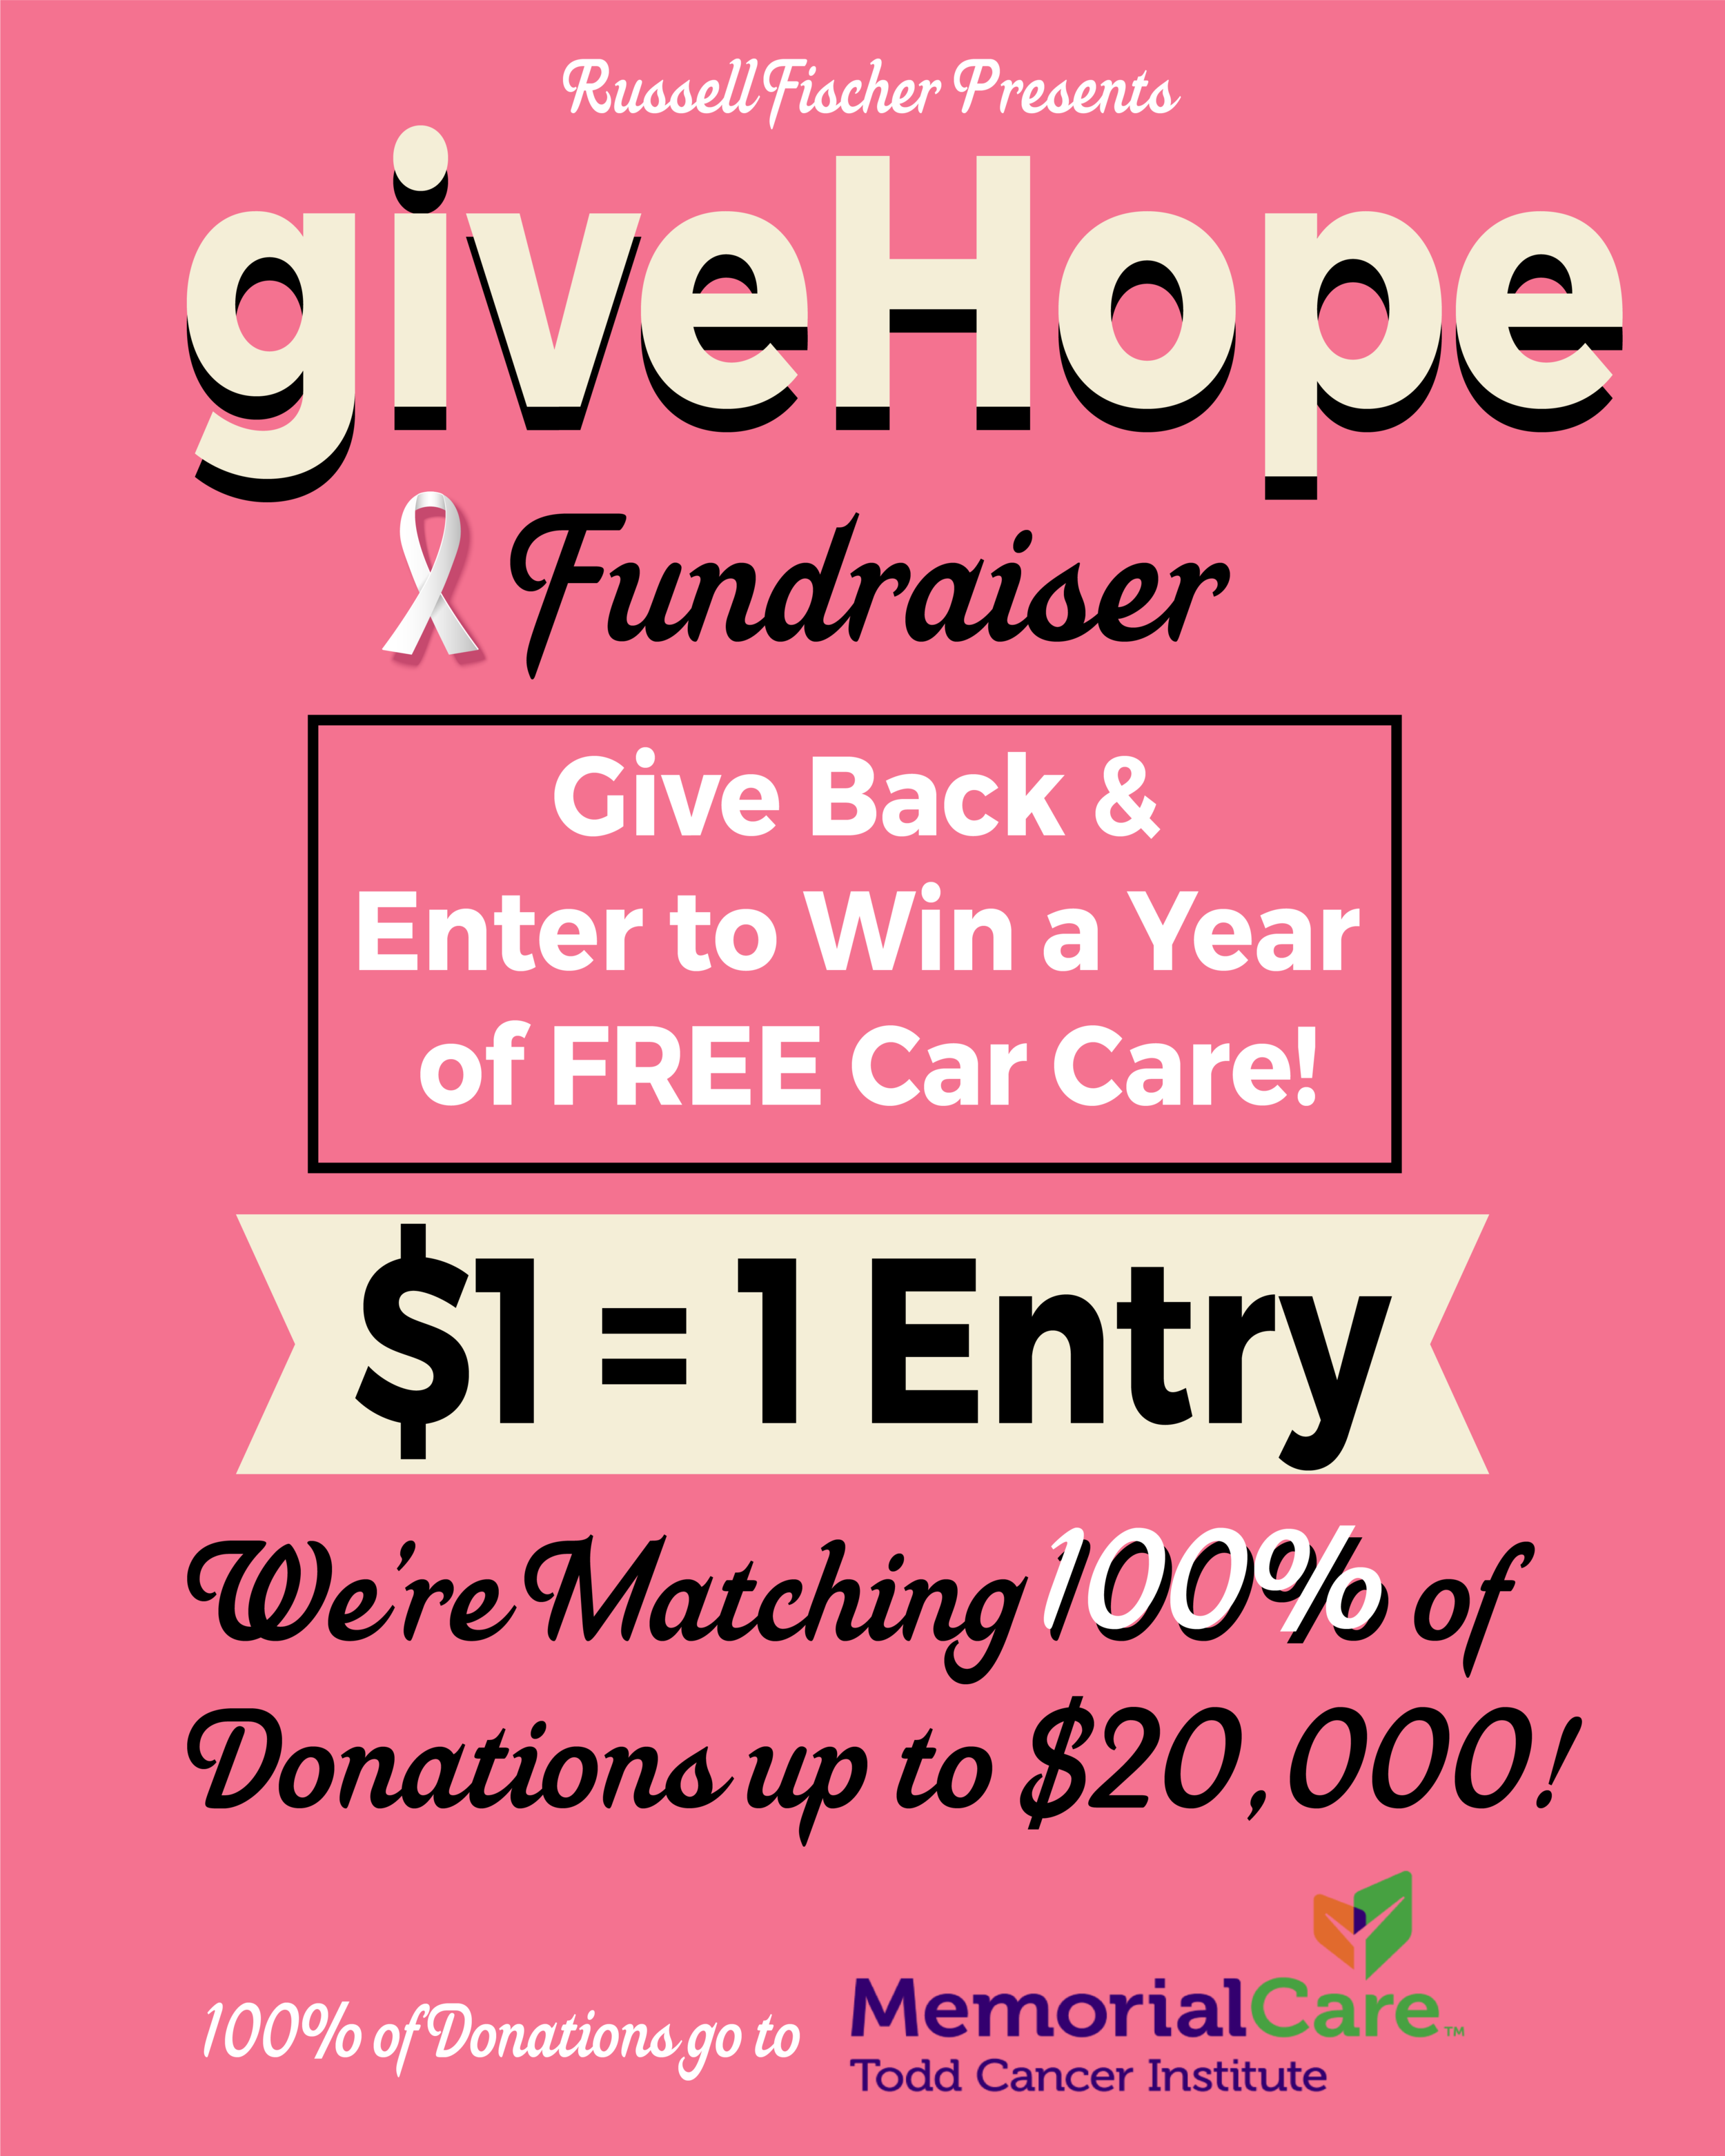 Give hope - Every $1 donated qualifies as 1 entry for our One Year of Car Washes Giveaway! All donations will benefit the Todd Cancer Pavilion at Long Beach Memorial and the many services and programs that are made available under one roof. By giving to this project, you will touch the lives of many patients and families facing cancer or who will face a diagnosis of cancer in the future. Along with your donation, we're matching 100% of donations up to $20,000! Together we can make a difference.